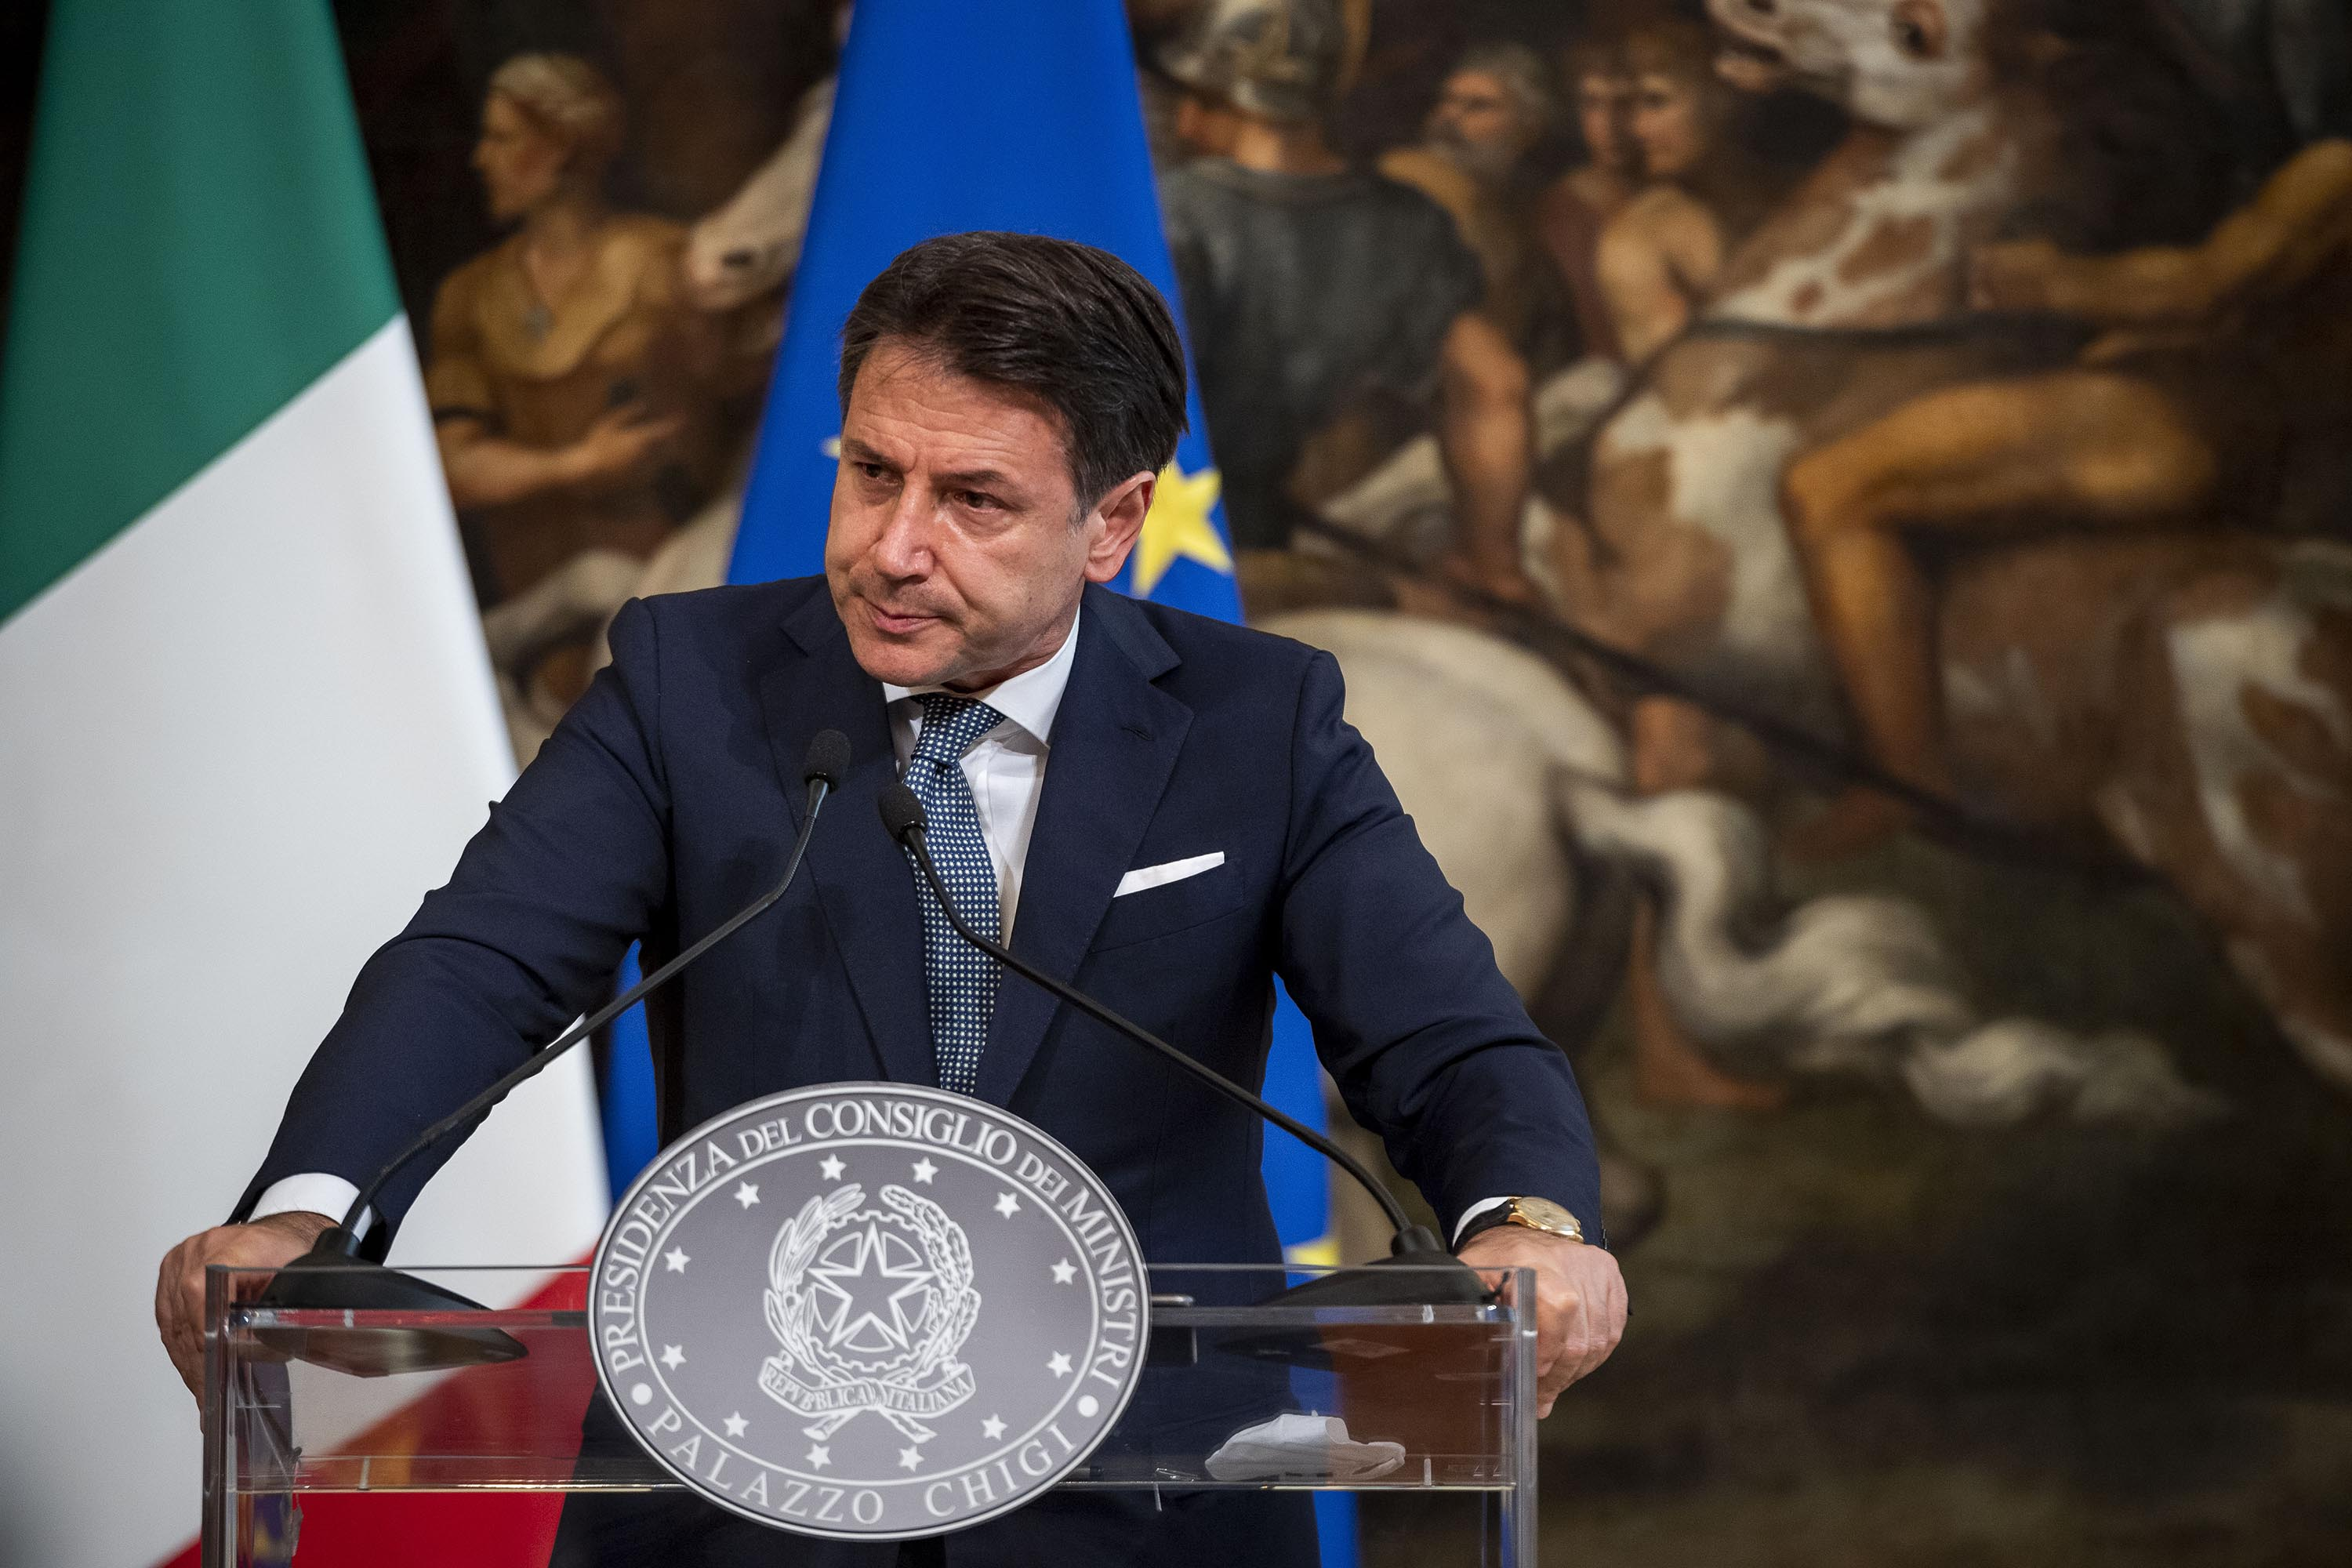 Italian Prime Minister Giuseppe Conte is pictured at a press conference in Rome on September 29.